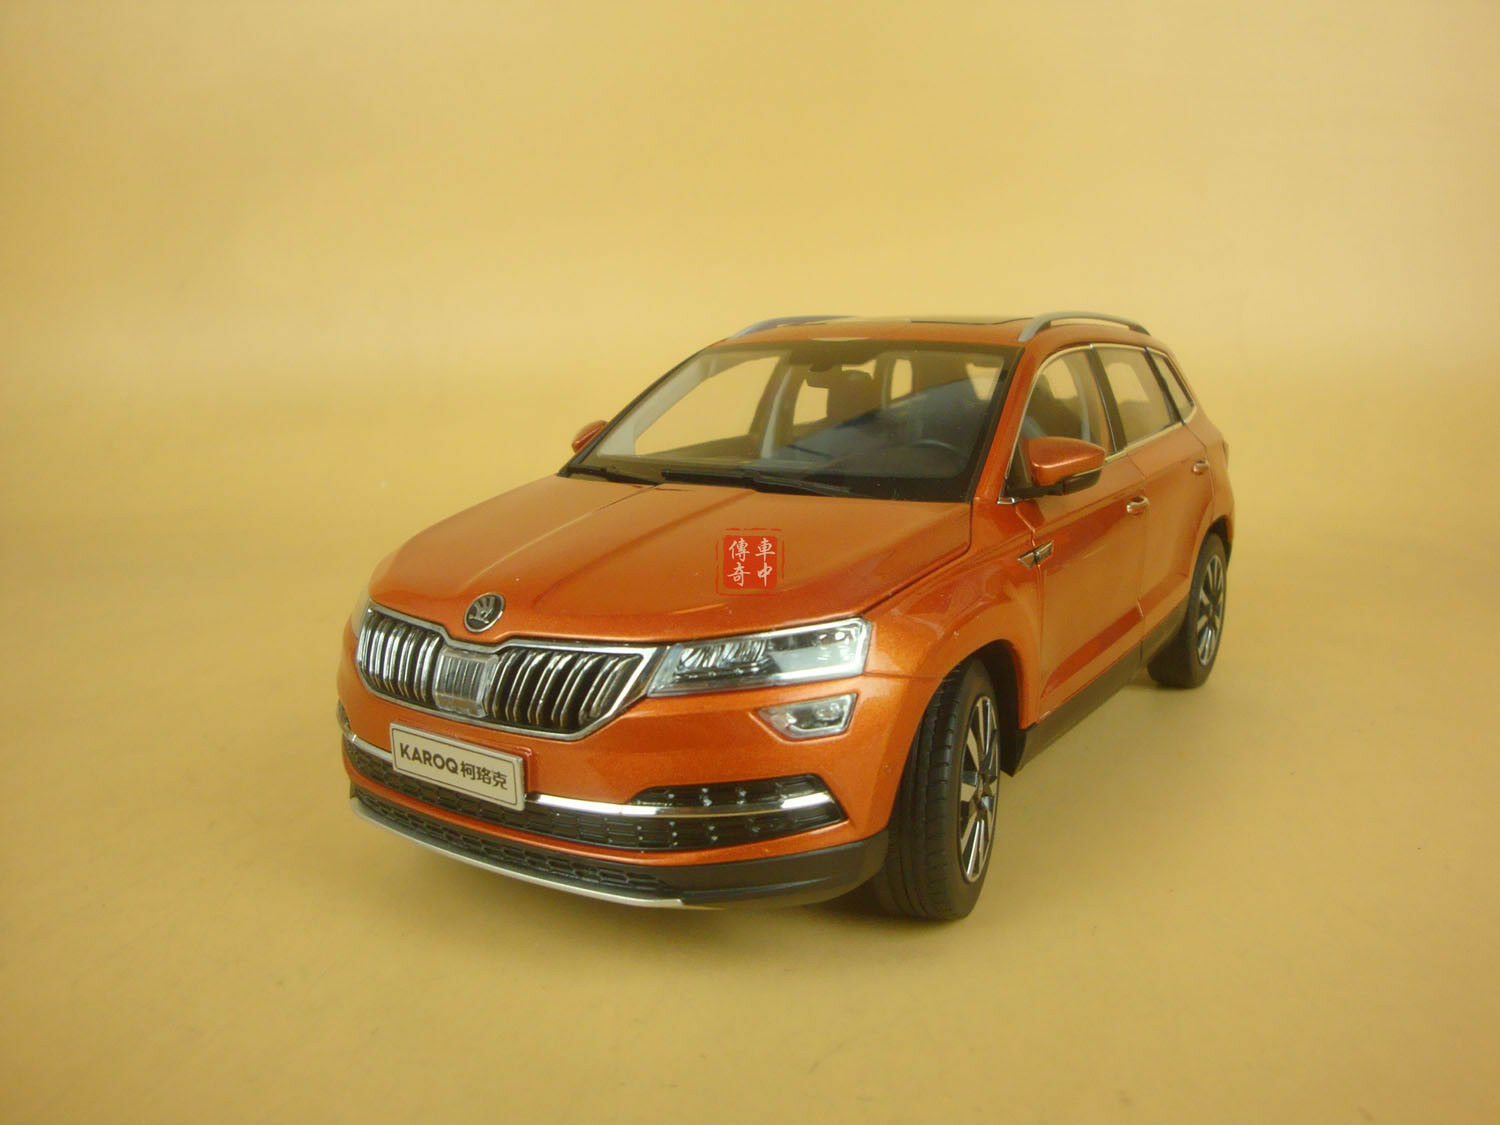 1 18 skoda karoq diecast model arancia Coloreee